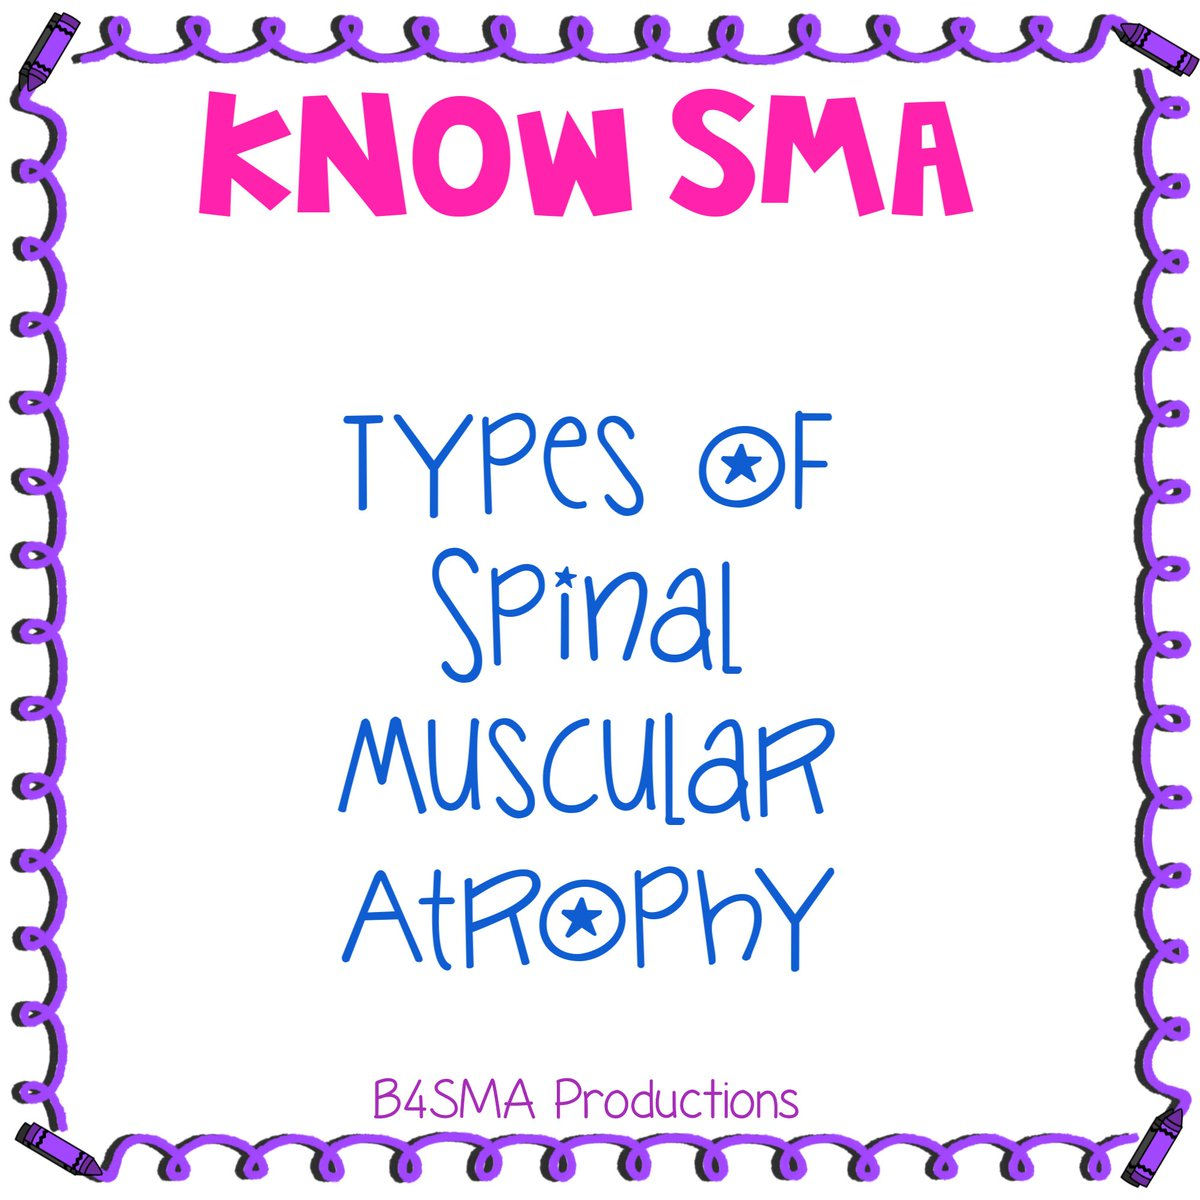 test Twitter Media - Do you know the types of SMA?  #SMAAwareness #AugustIsSMAAwarenessMonth   #B4SMAProductions  #Type0 https://t.co/txkCOGalfY #Type1 https://t.co/QA8617LTLO #Type2 https://t.co/dP3UpBQg9J #Type3 https://t.co/WsG8nslg36 #Type4 https://t.co/FgXnO1l95f https://t.co/qEfGUT9n0i